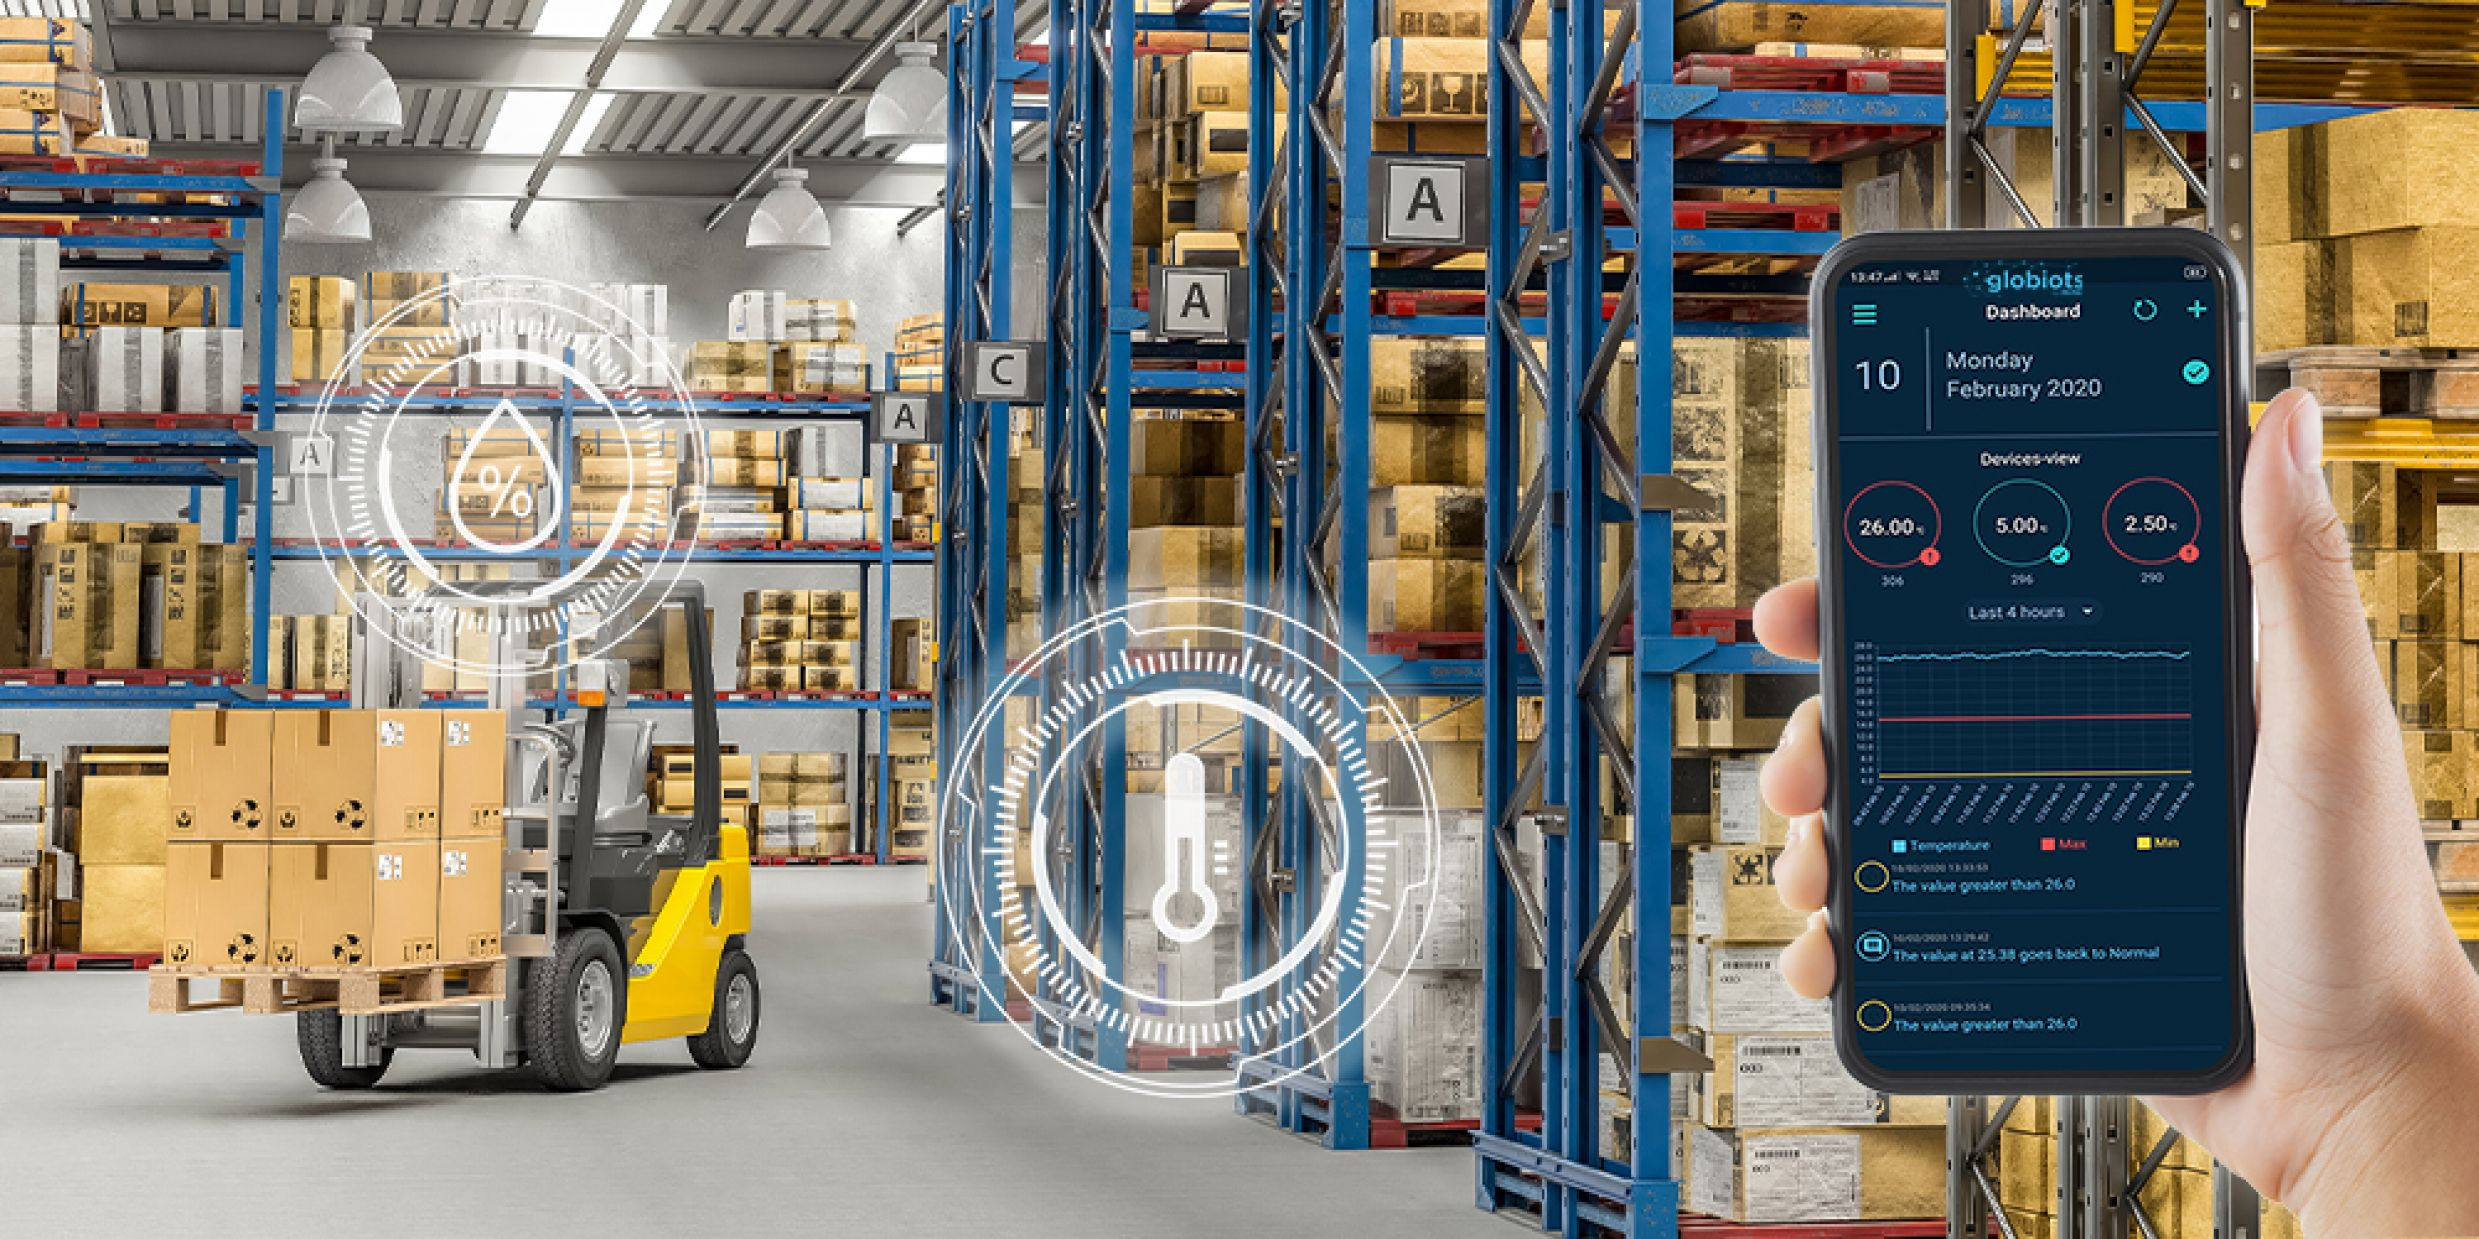 Warehouse Temperature Humidity Monitoring System based on Globiots